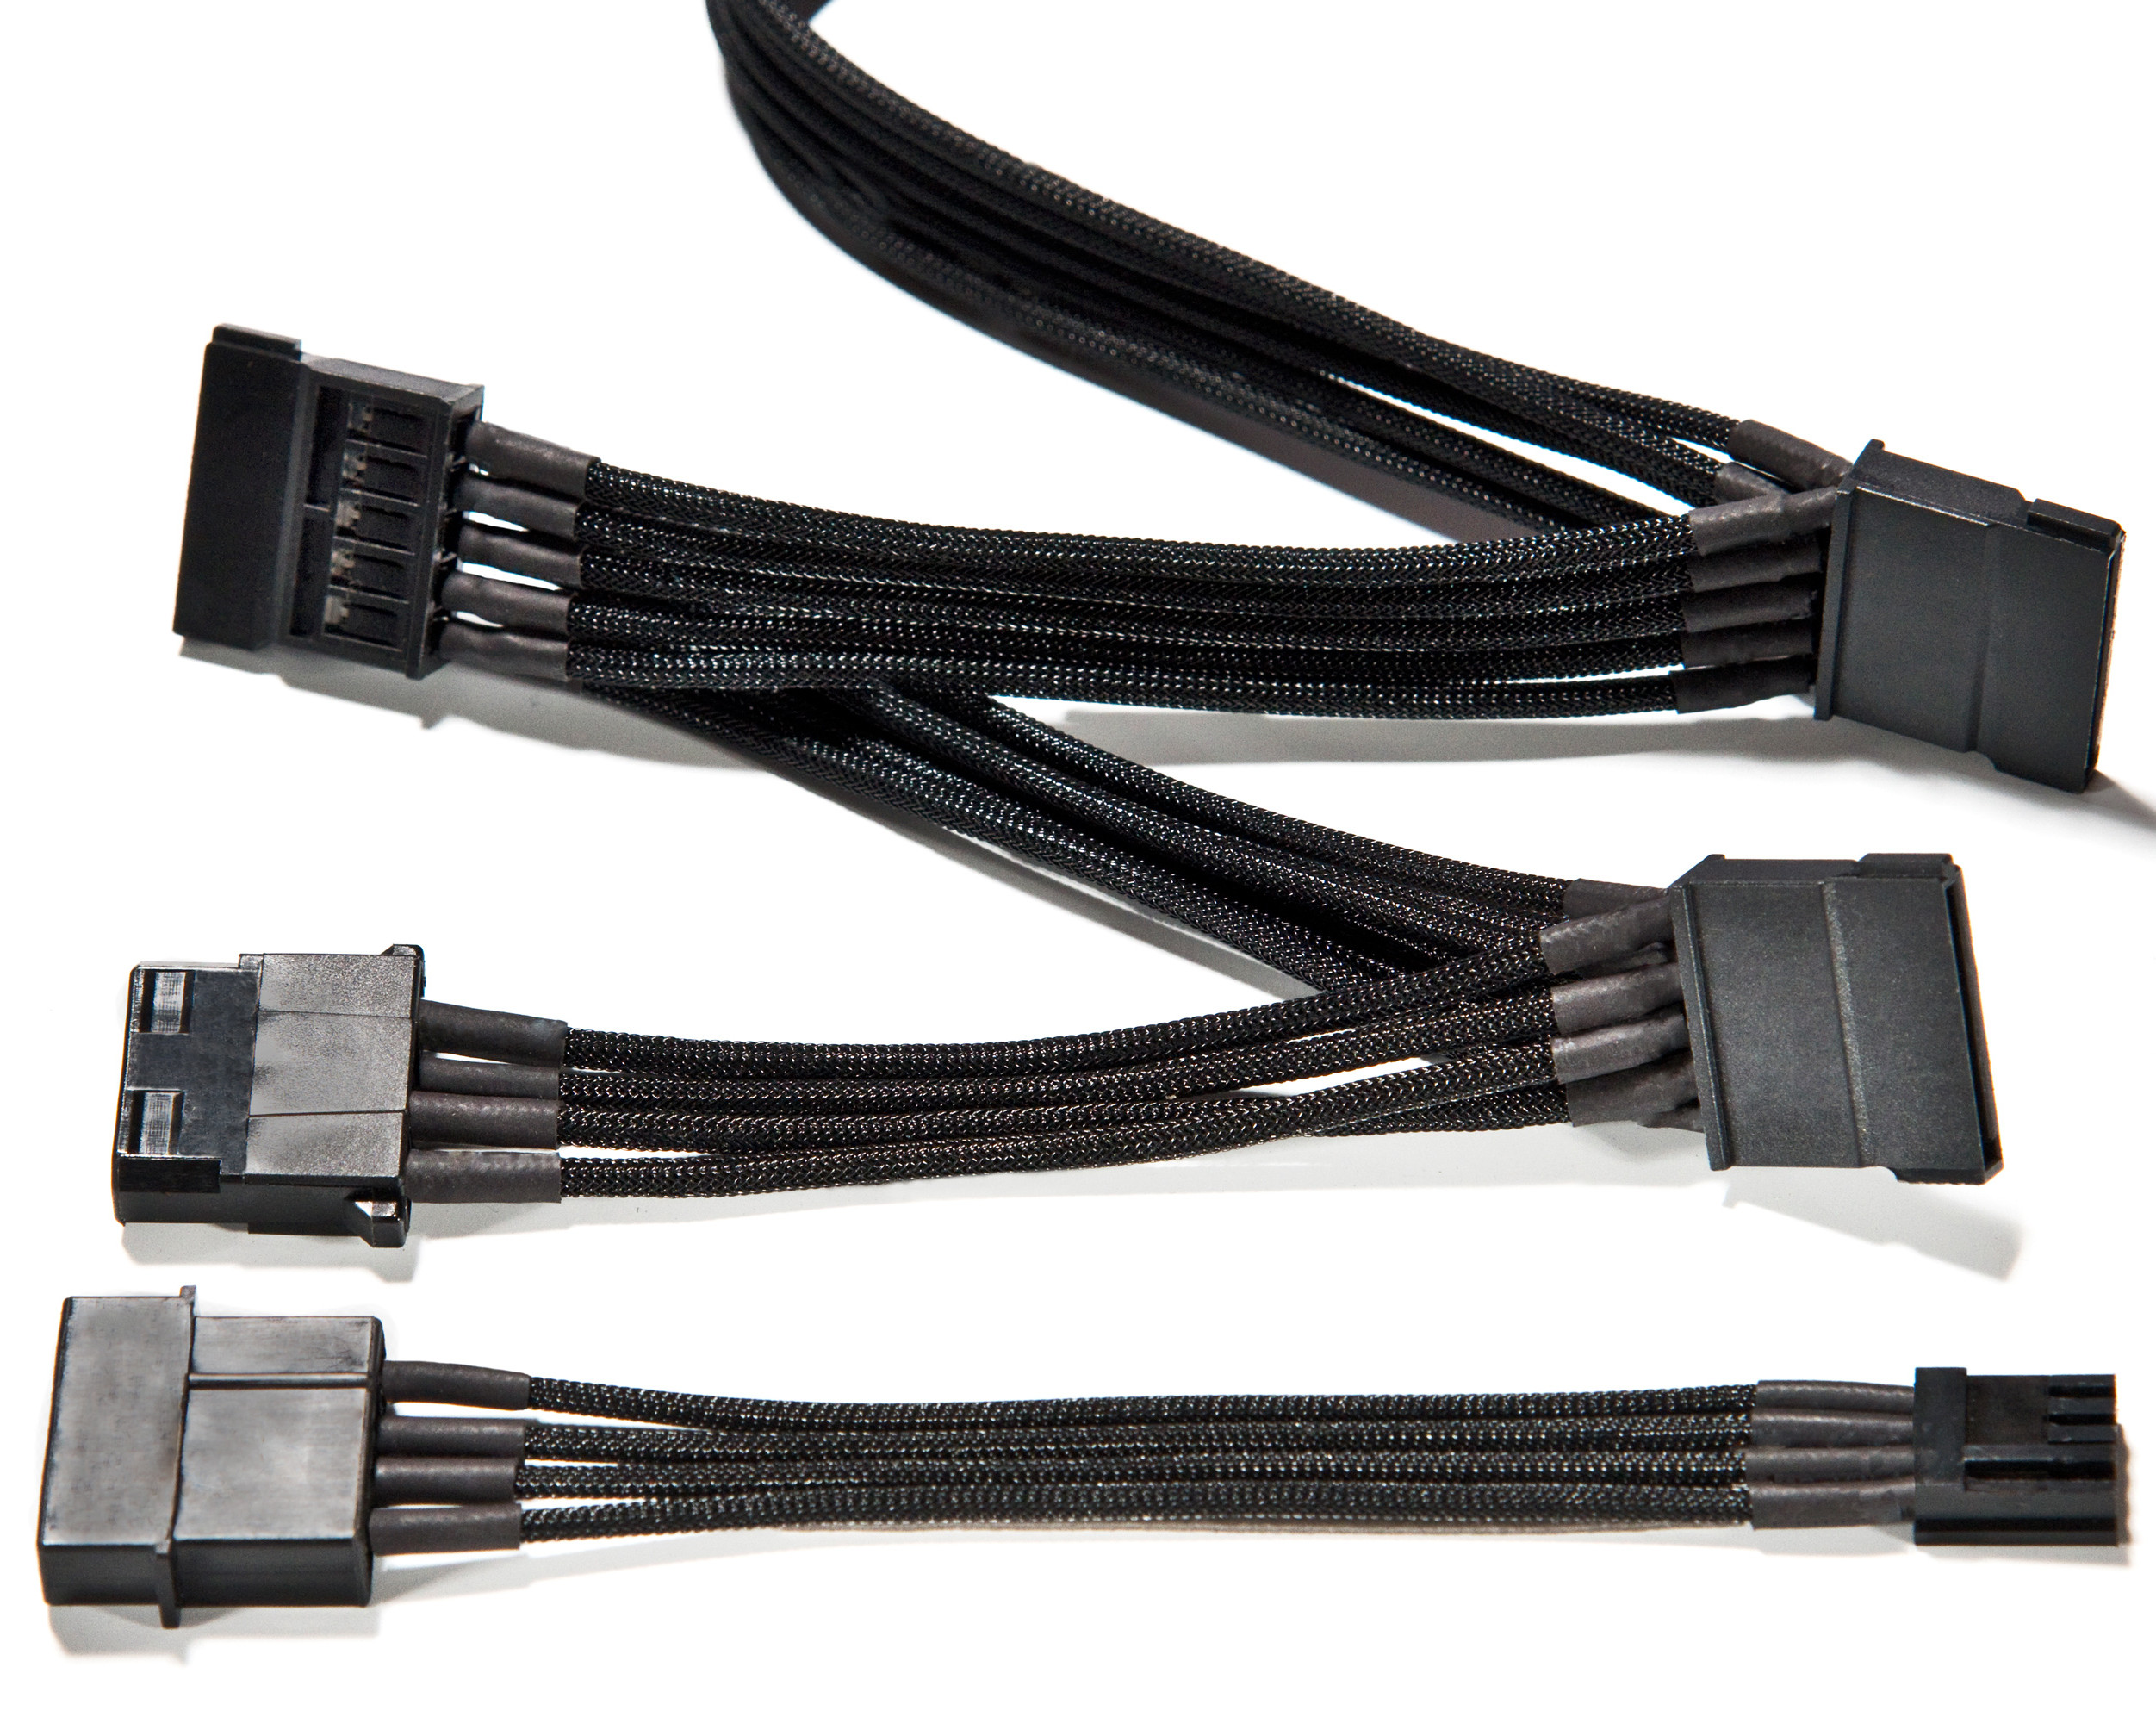 Be Quiet! Releases Premium Sleeved Power Cable | TechPowerUp